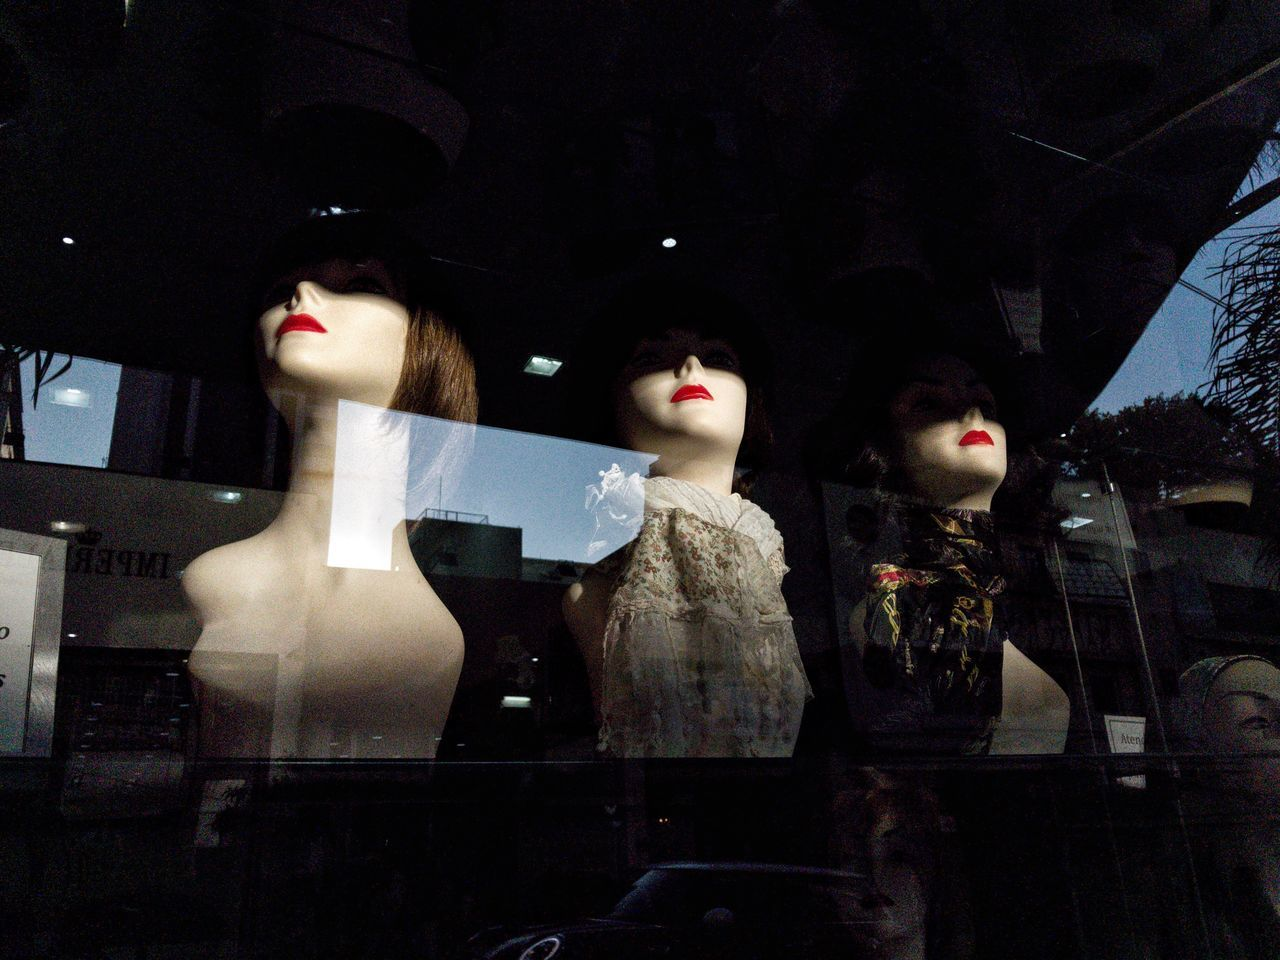 """""""Eyes wide shut"""". July, 2017 Streetphotography Store Mannequin Retail  Retail Display Human Representation Female Likeness Store Window Glass - Material For Sale Clothing Store Consumerism Fashion No People Boutique Indoors  Variation Doll Night Statue Business"""